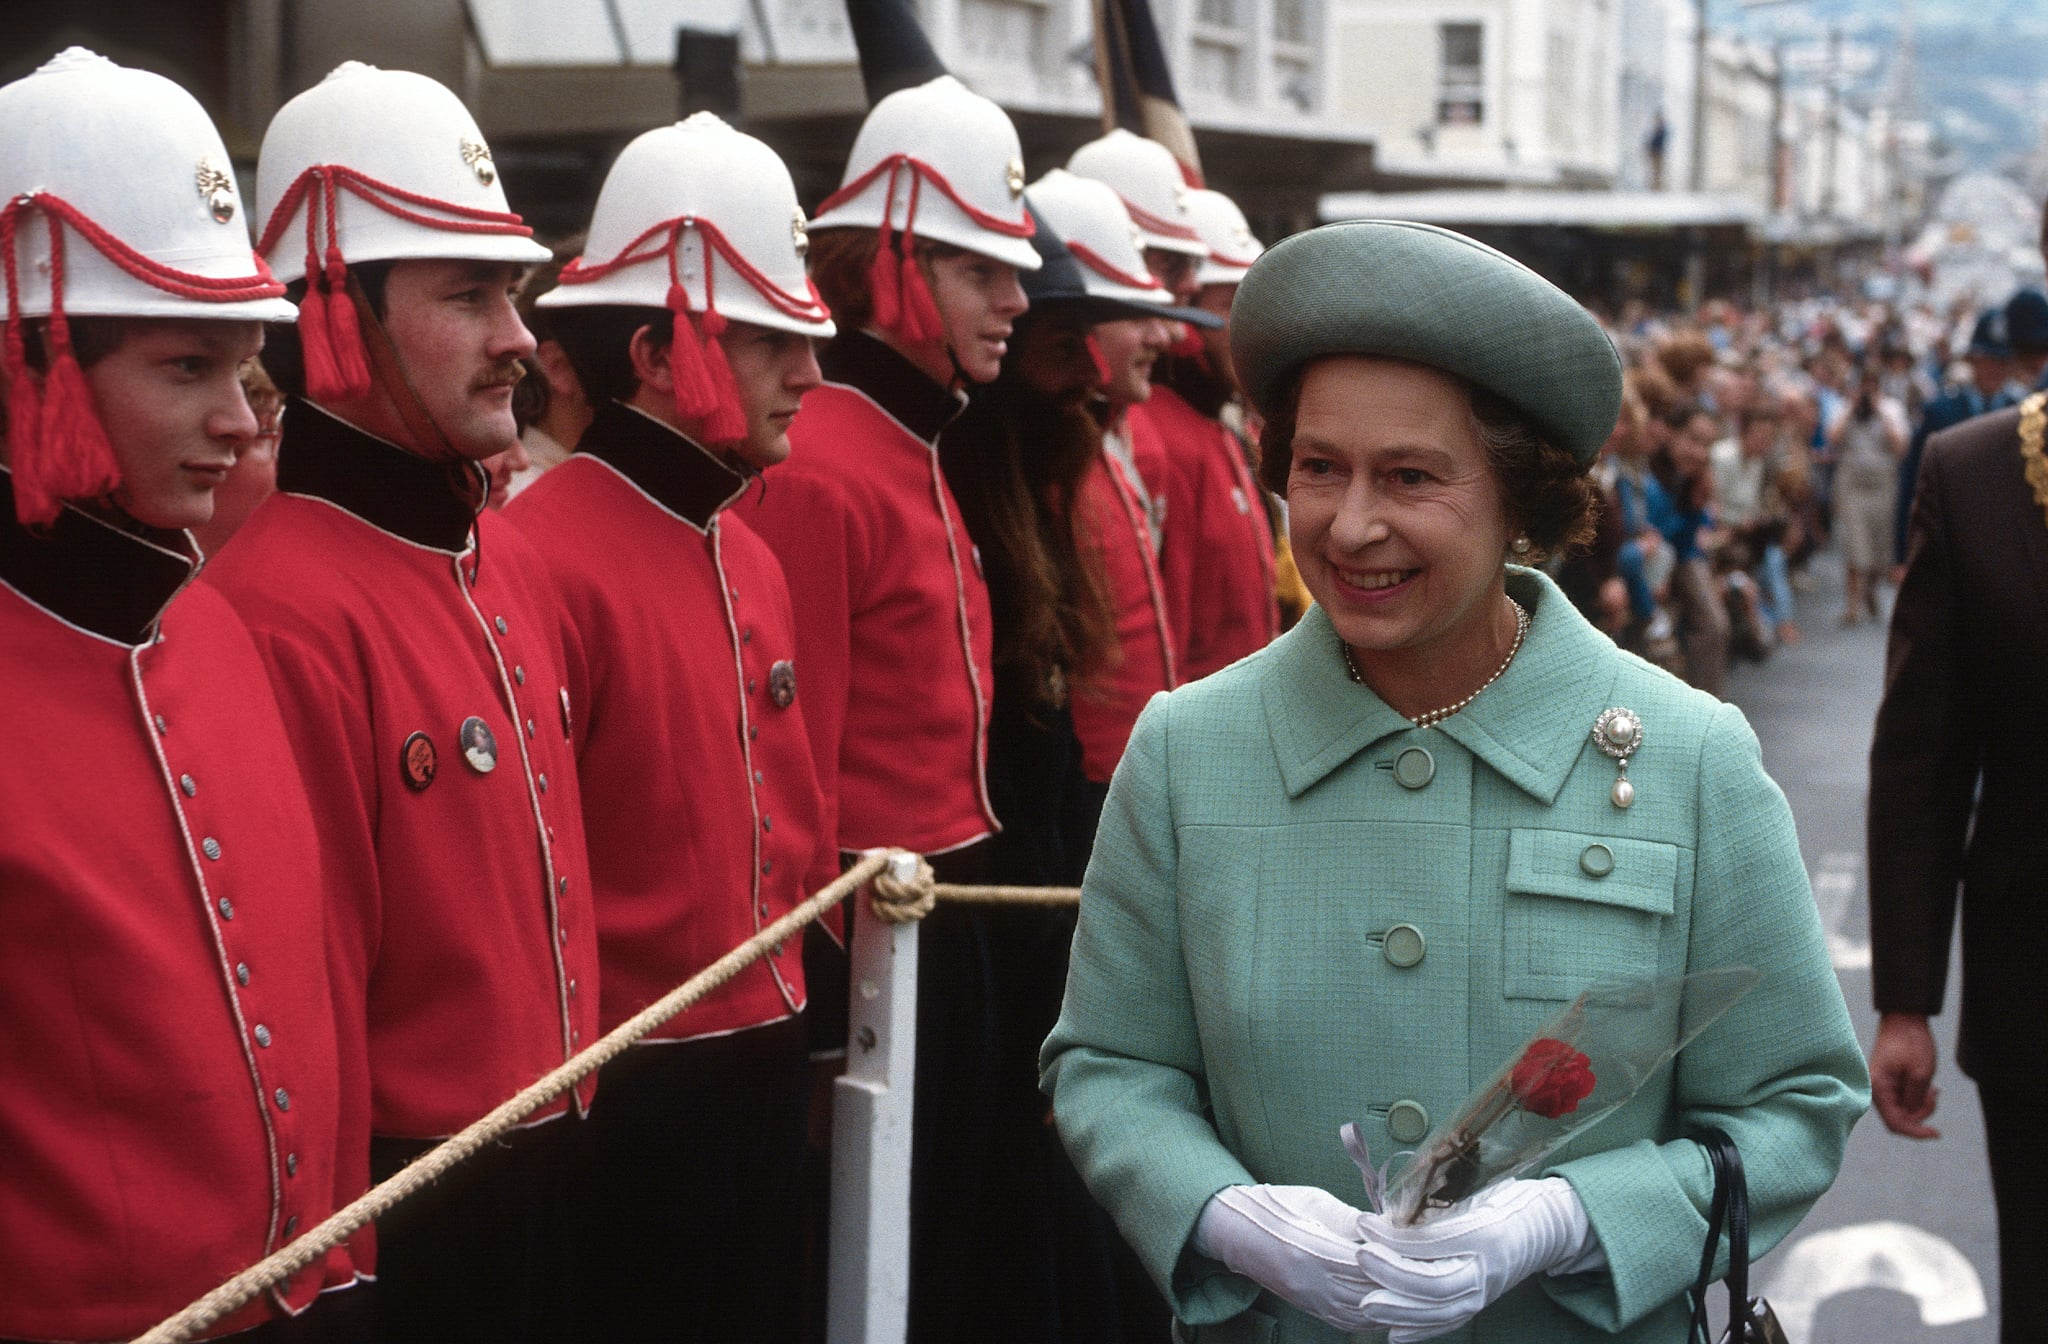 NEW ZEALAND - OCTOBER 01:  Queen Elizabeth ll smiles during an inspection as she tours New Zealand on October 01, 1981 in New Zealand. (Photo by Anwar Hussein/Getty Images)